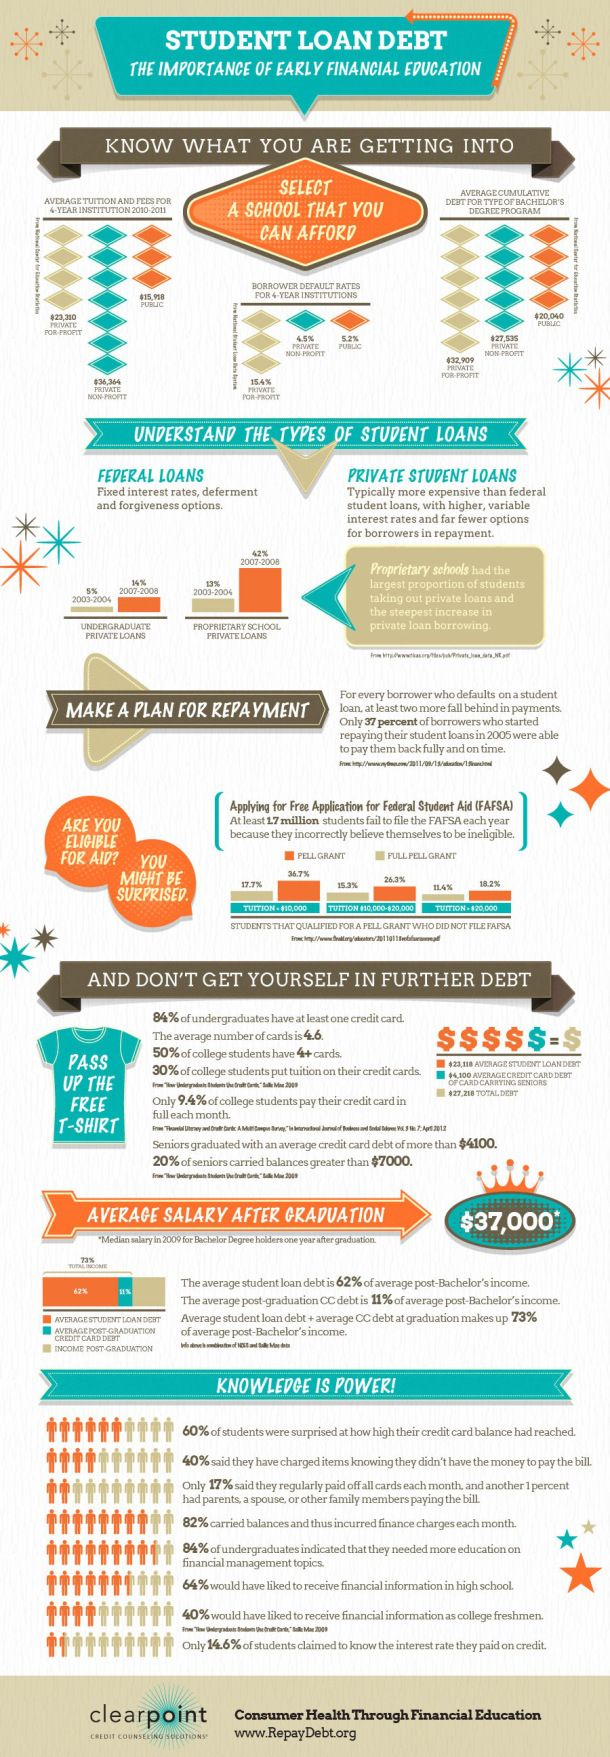 17 best images about infographics finance credit student loan debt is the next big financial crisis for america this infographic by clearpoint illustrates how the more you know the less you ll owe when